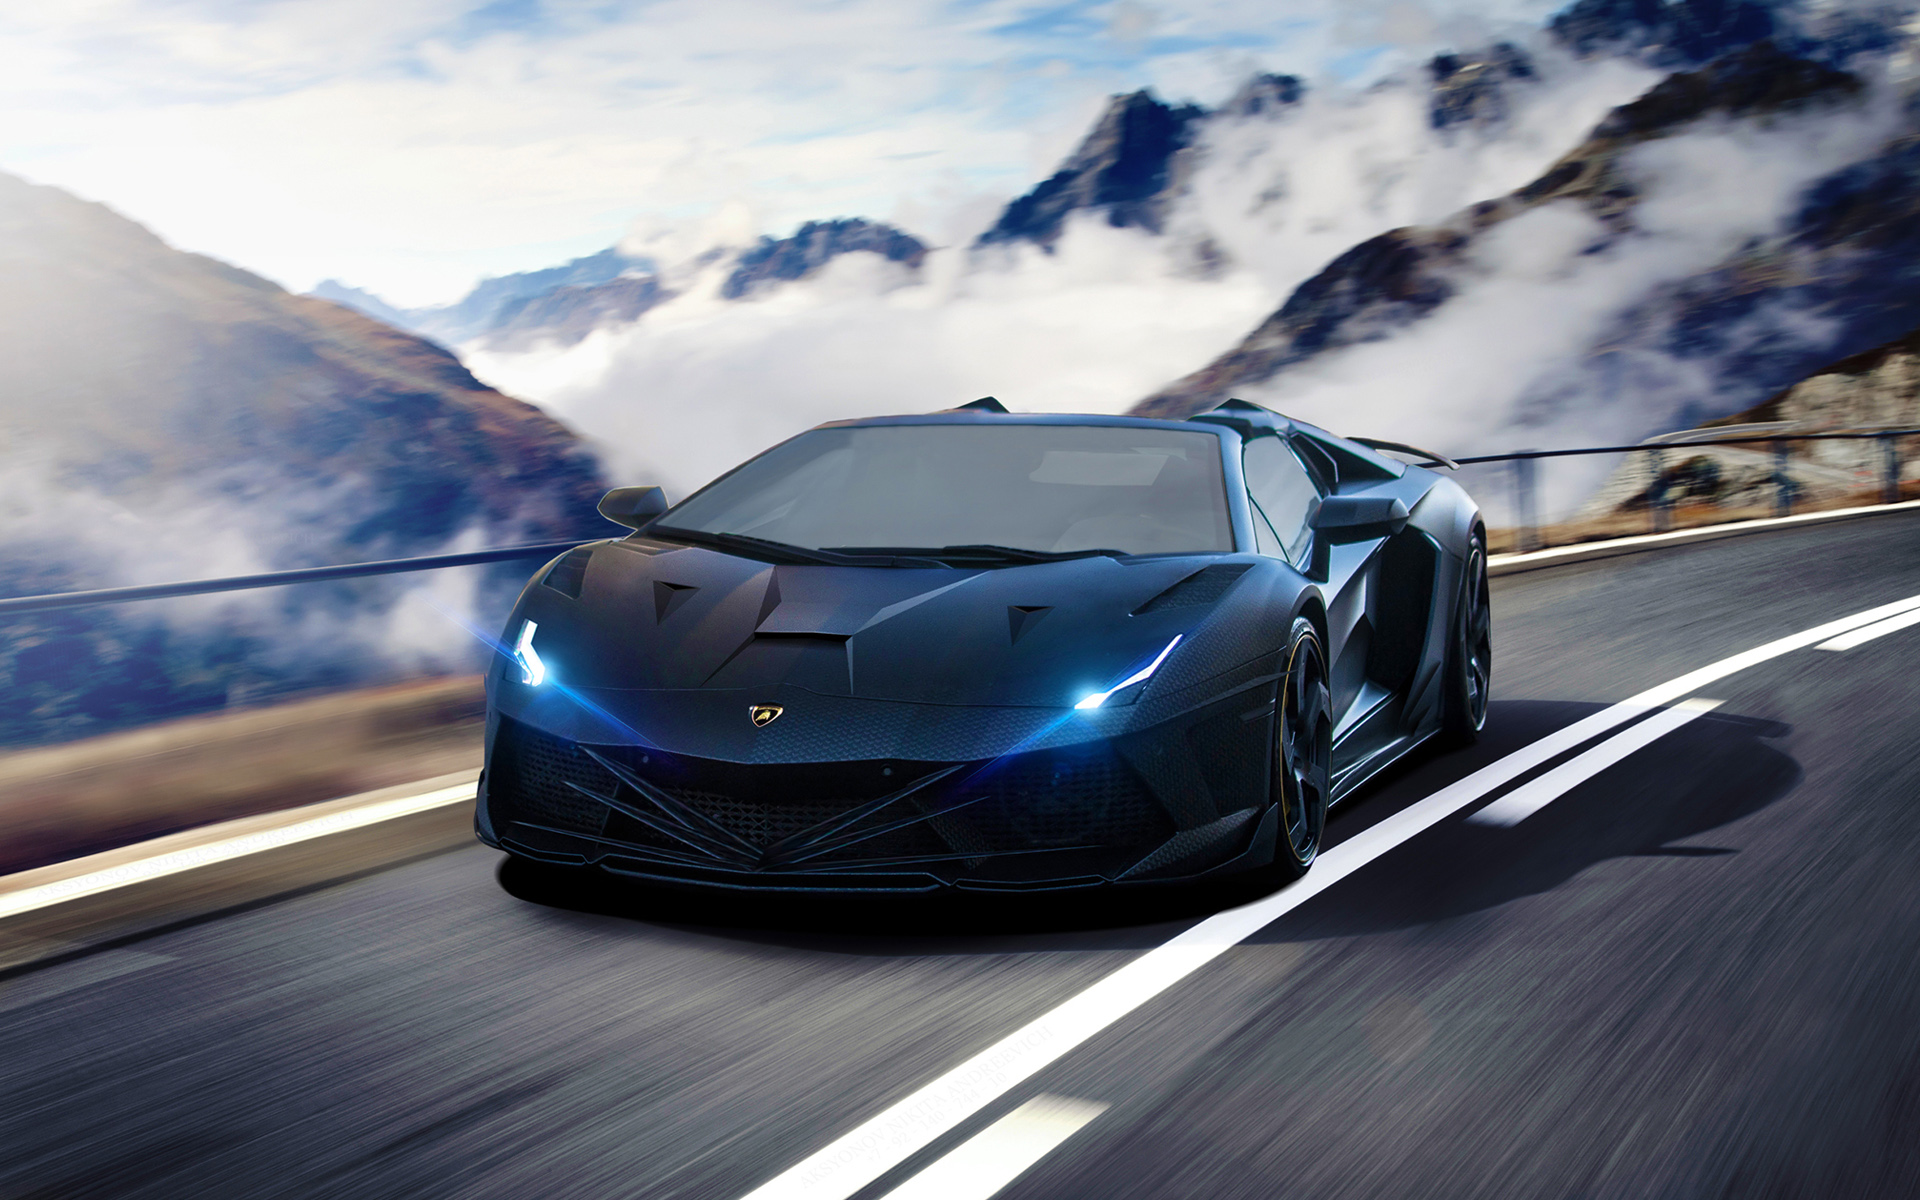 Lamborghini Aventador Supercar Wallpaper Hd Car Wallpapers Id 5489